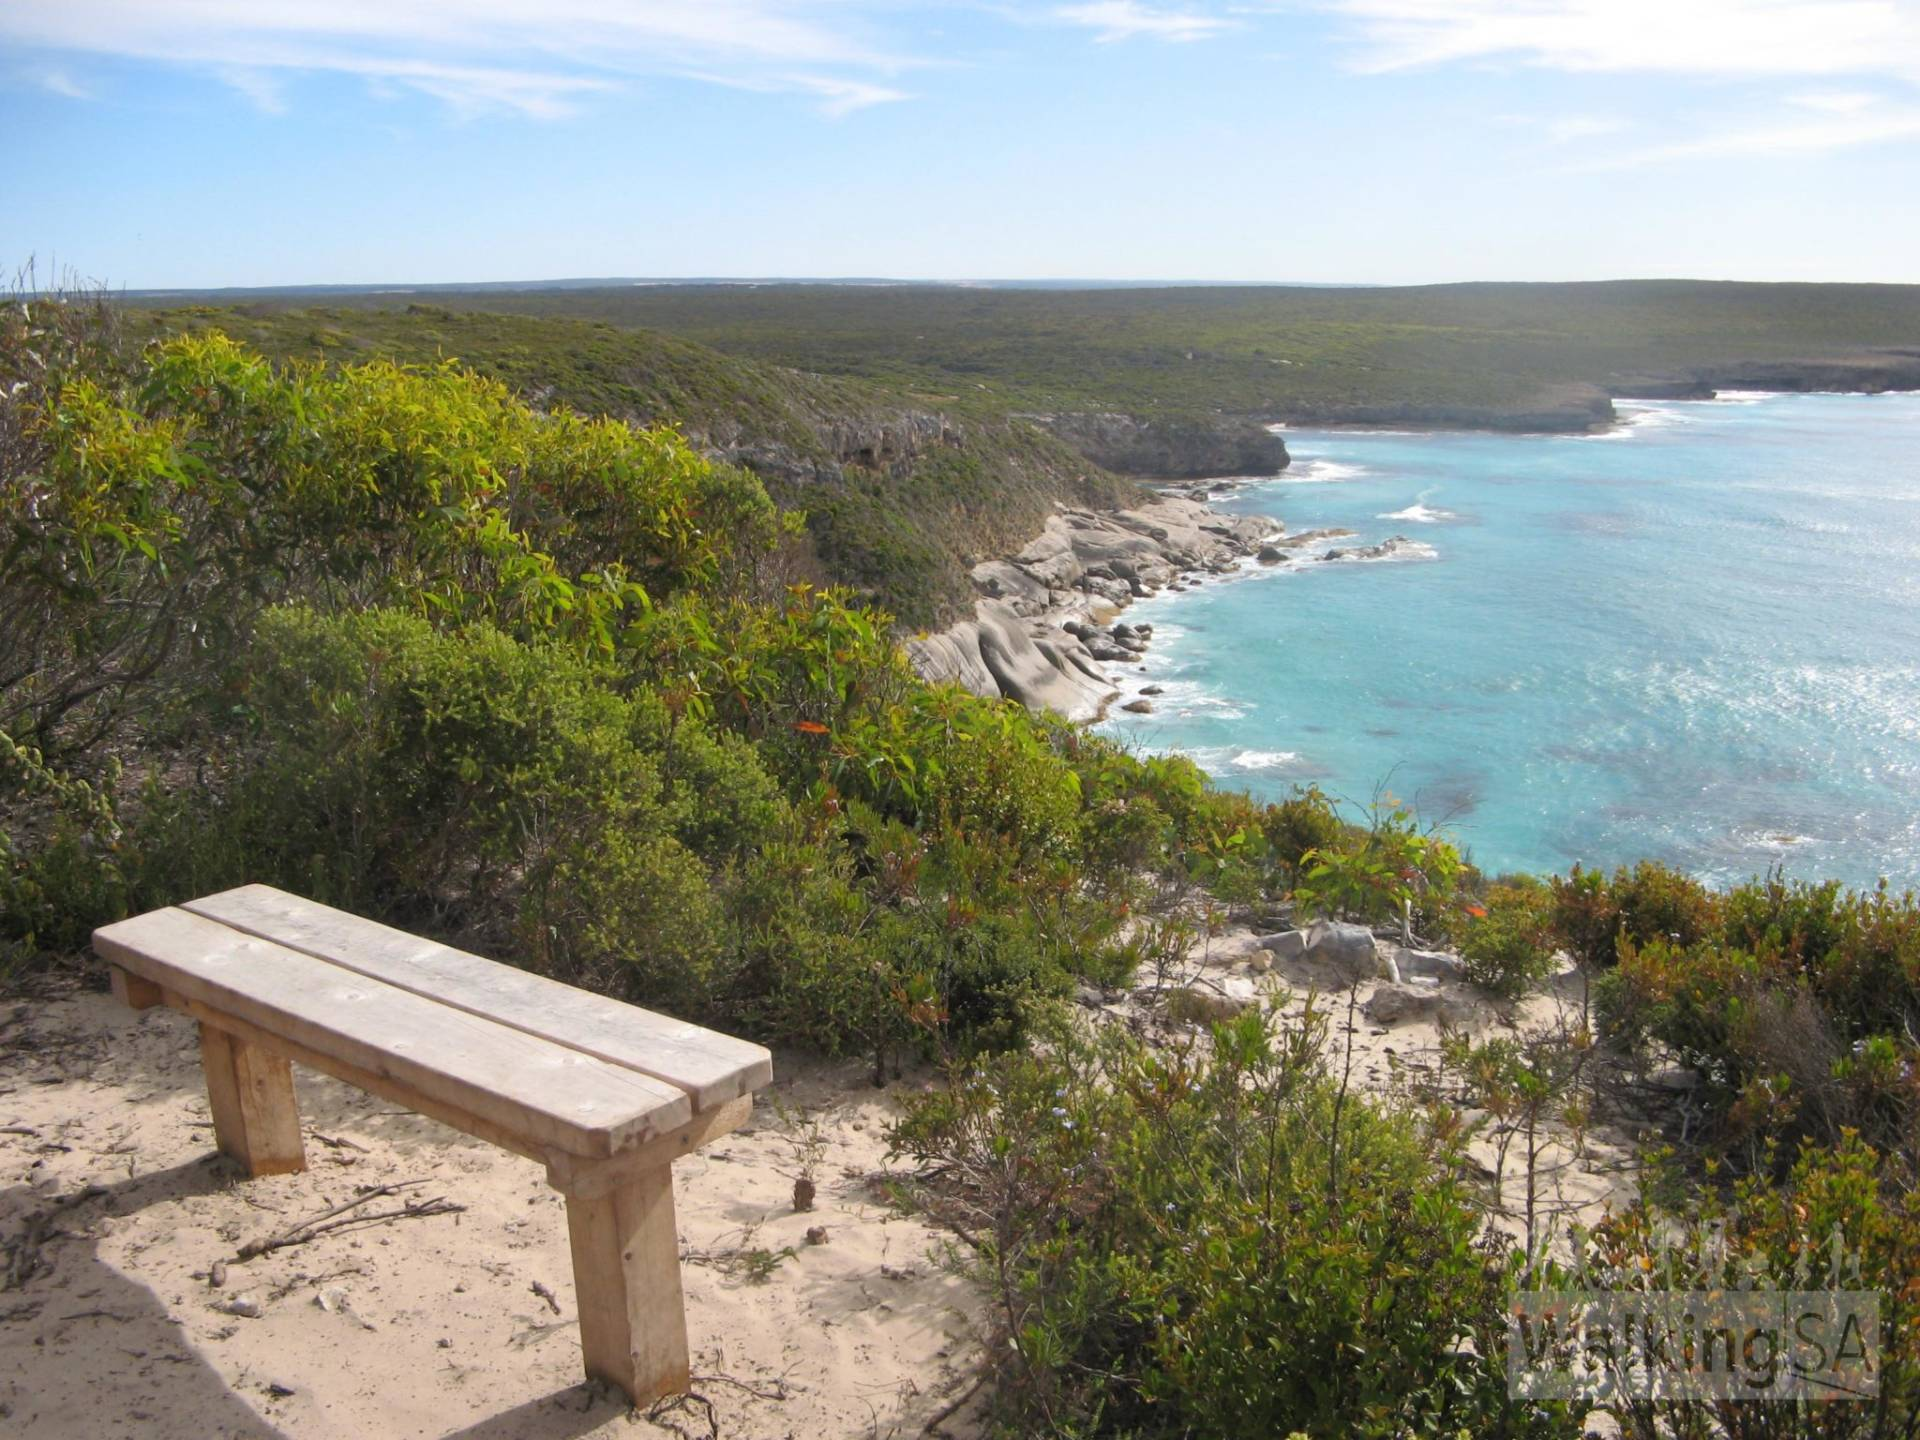 Kangaroo Island Wilderness Trail - Day 3: Sanderson Section